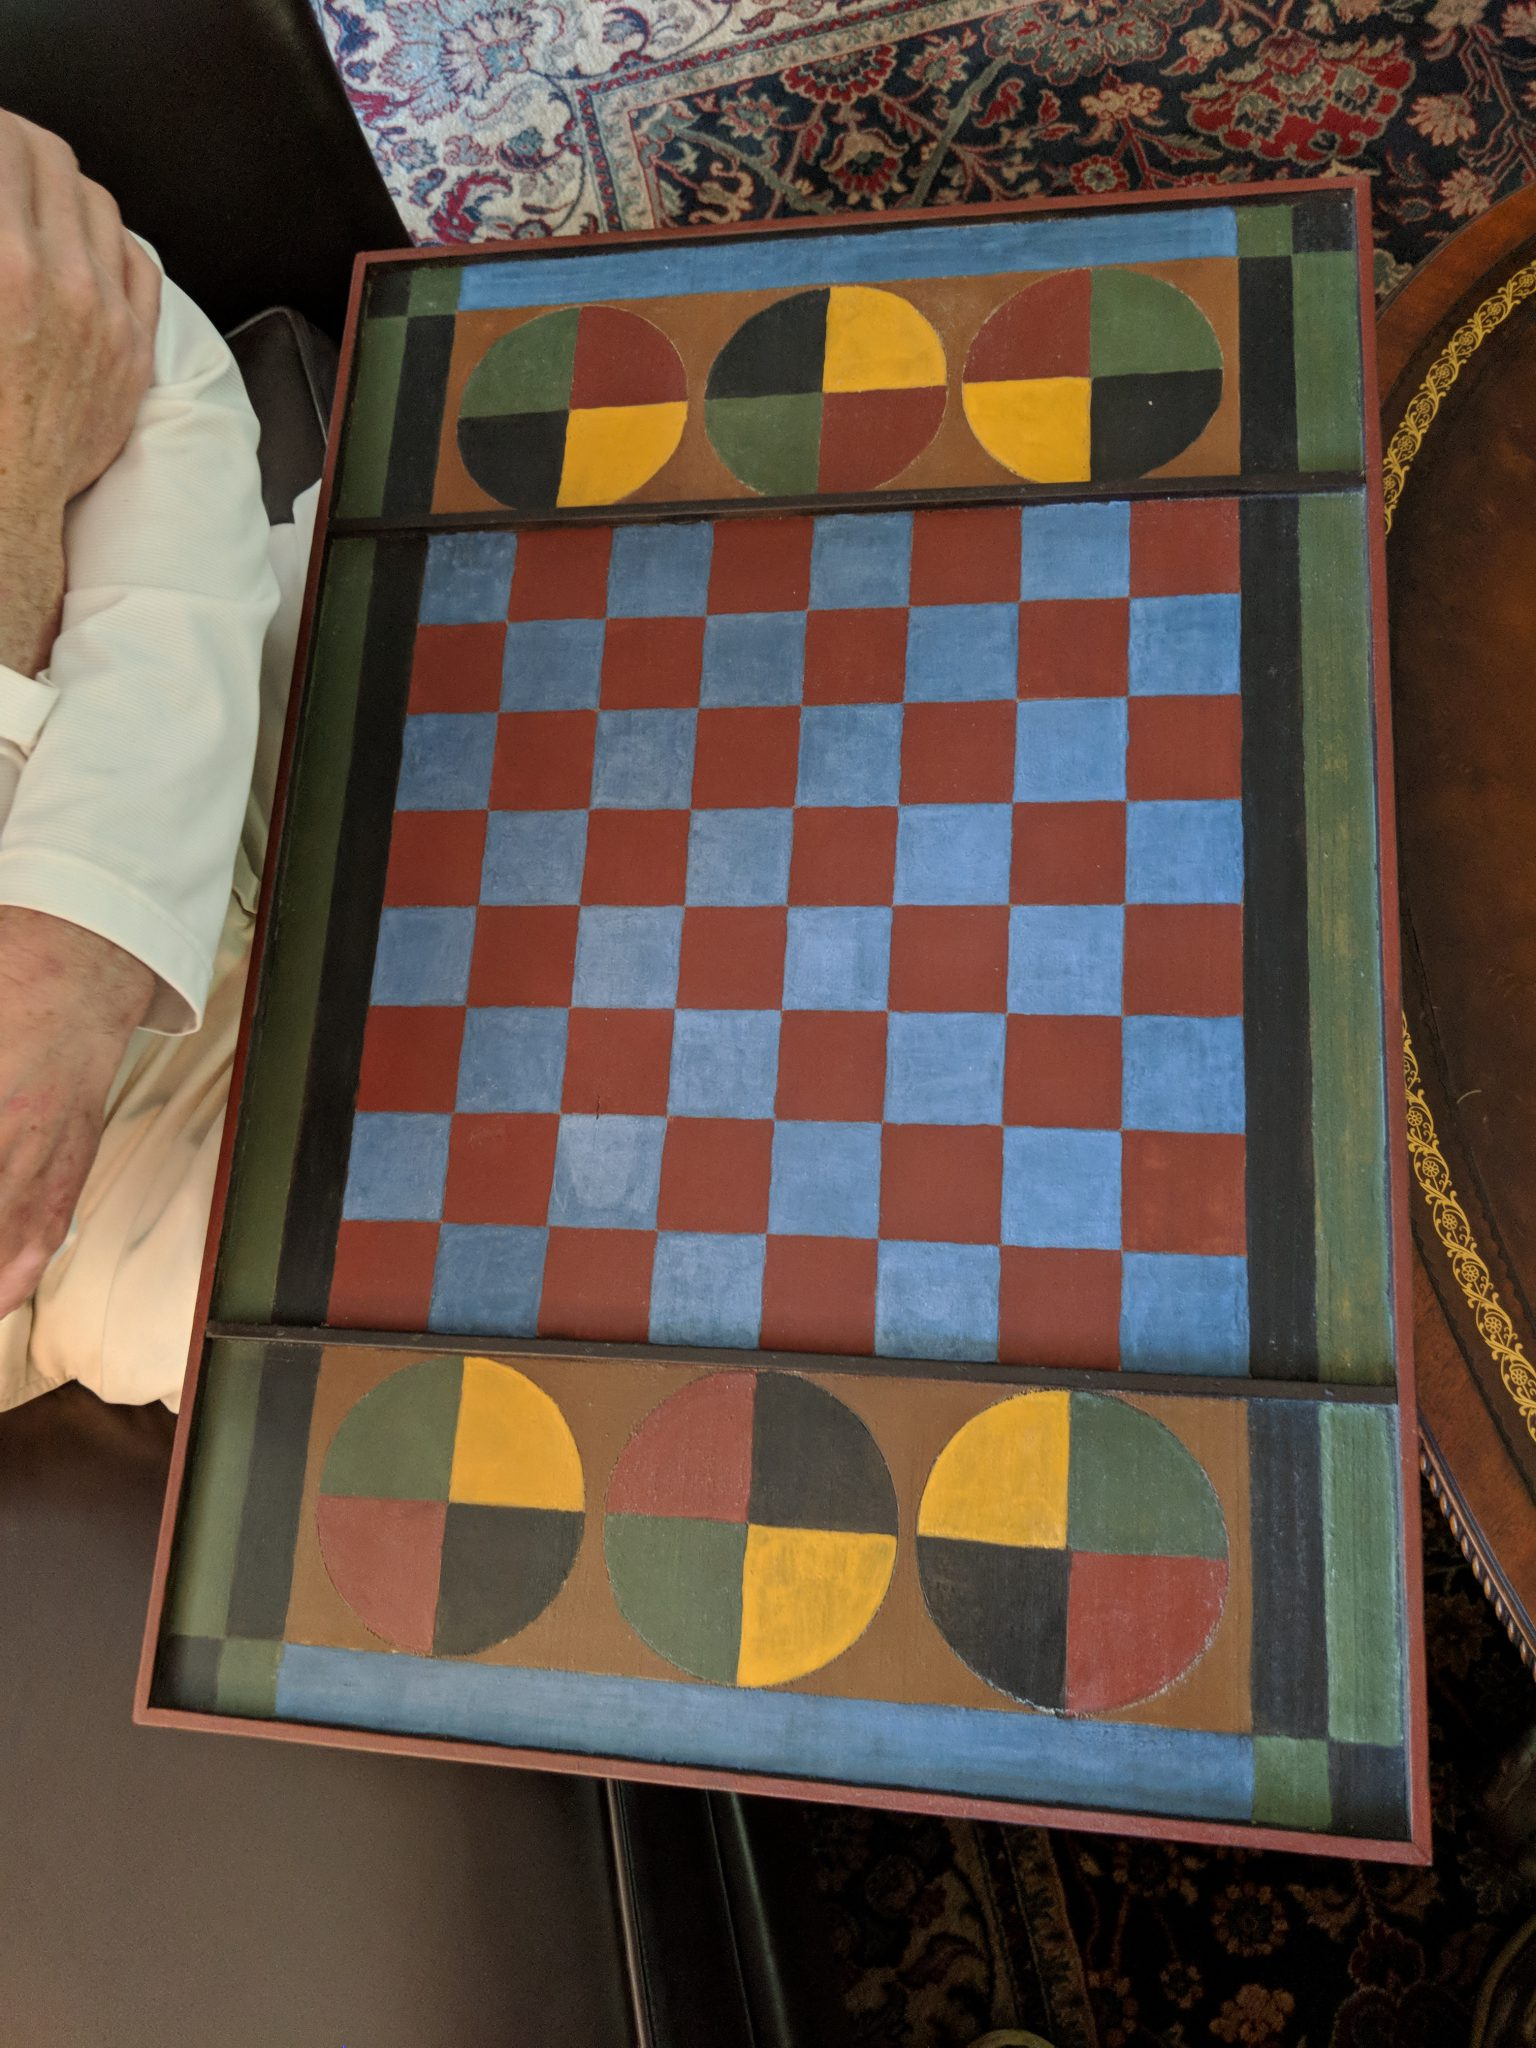 Milk painted game board. Has both Checkers and Parcheesi